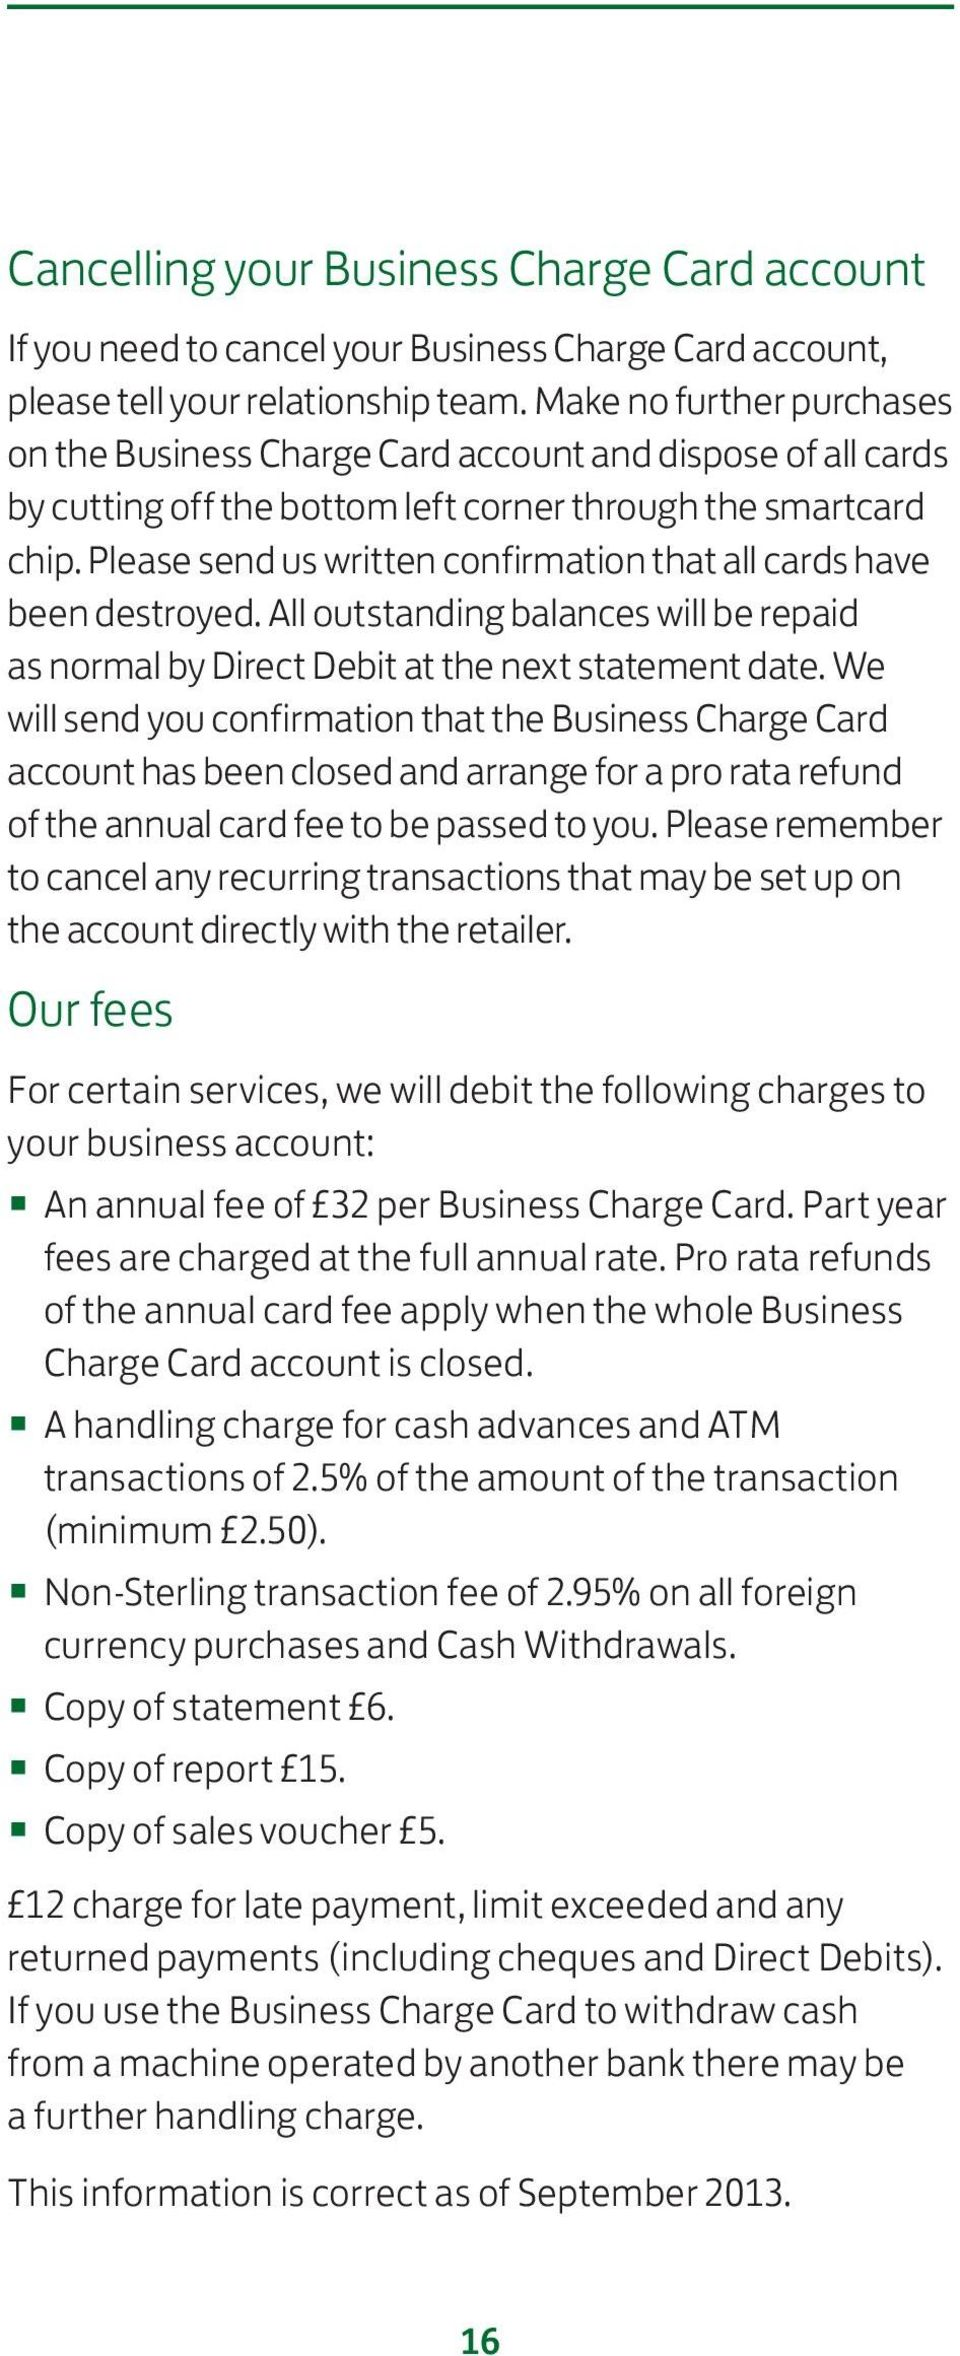 Please send us written confirmation that all cards have been destroyed. All outstanding balances will be repaid as normal by Direct Debit at the next statement date.